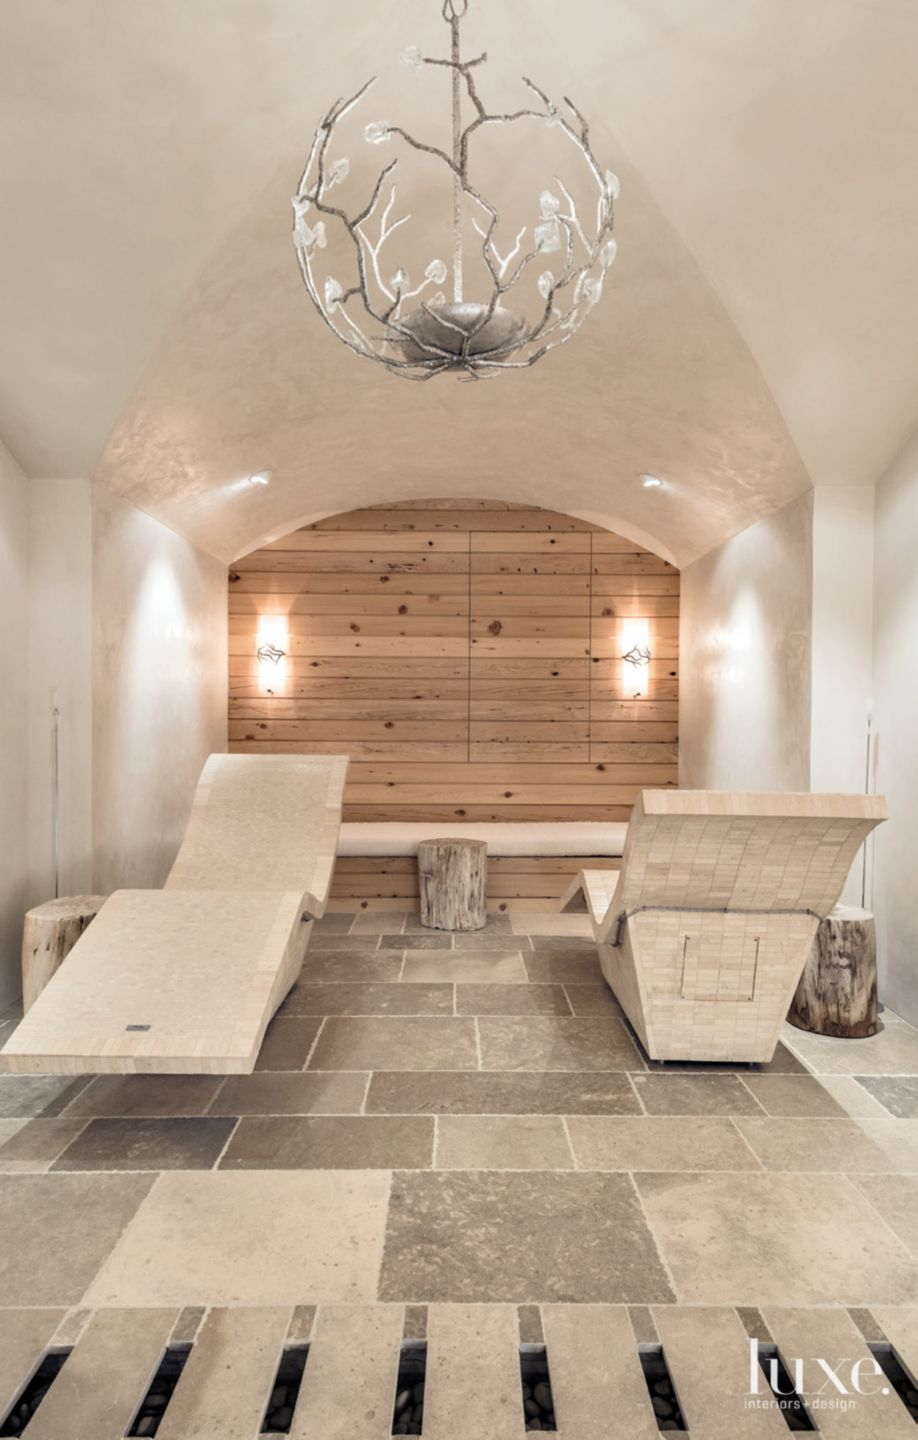 Mountain Neutral Spa with Heated Loungers